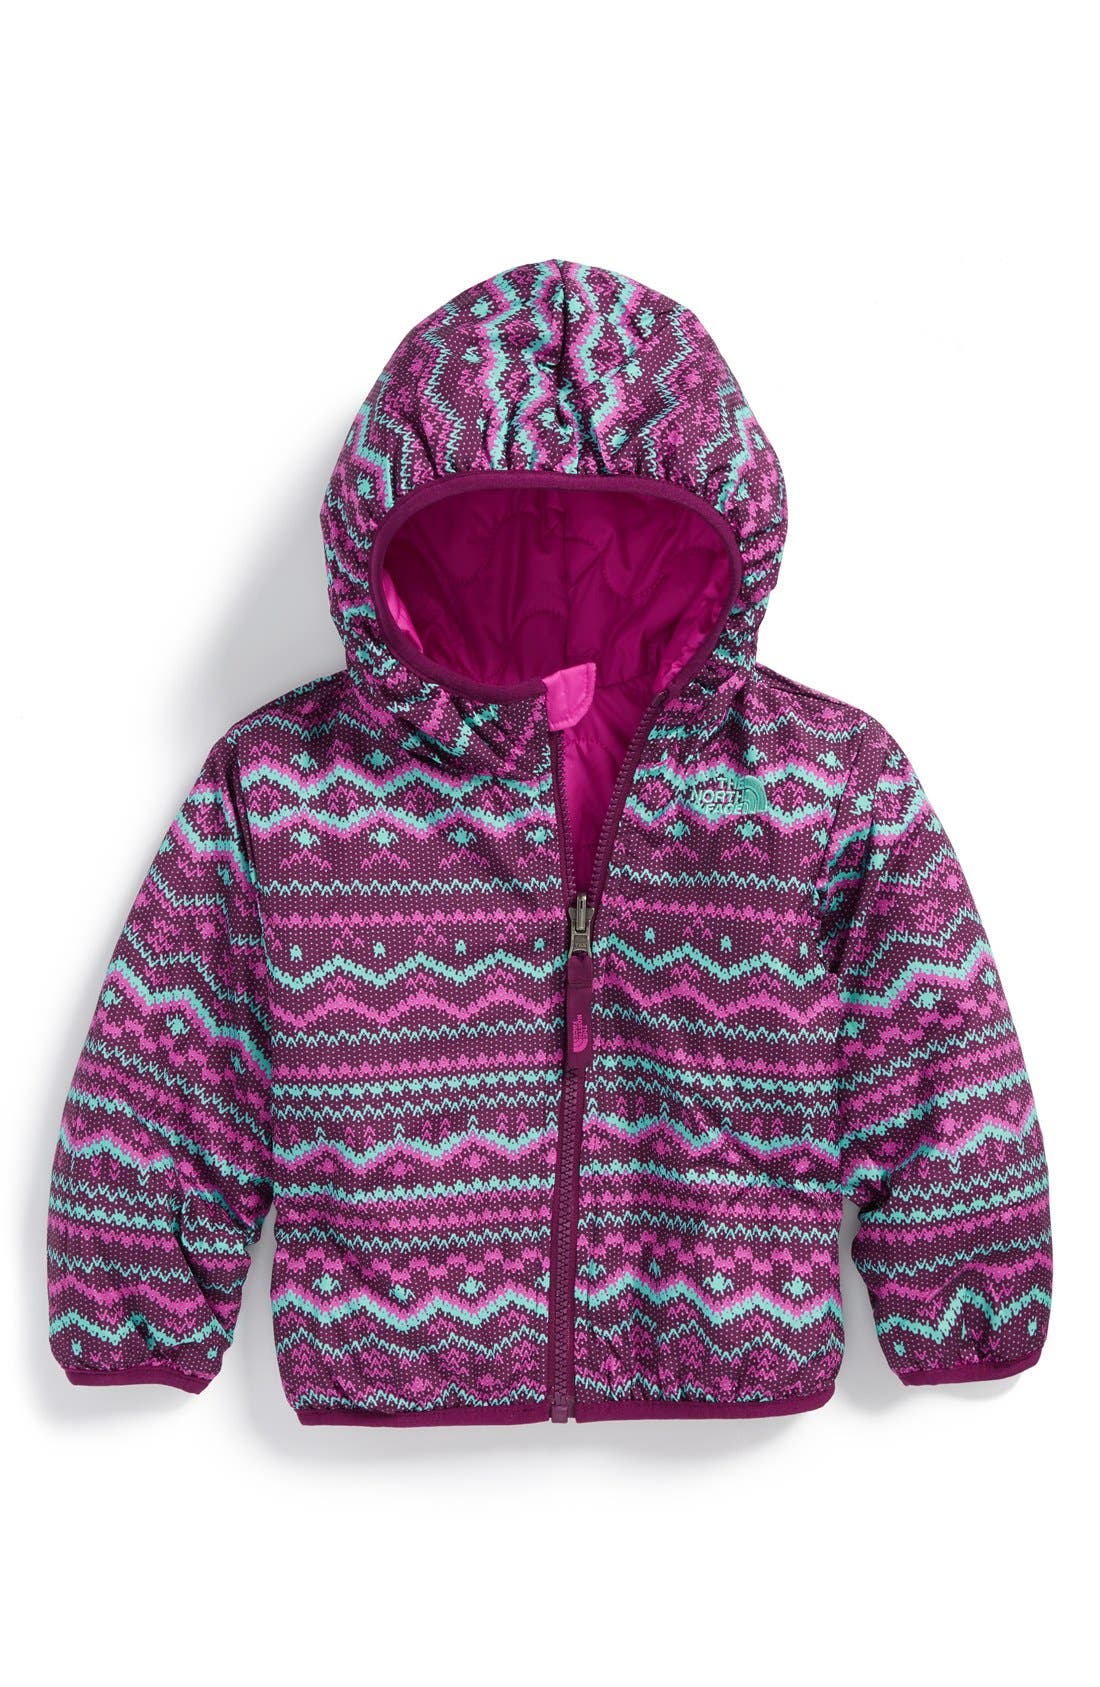 Main Image - The North Face 'Perrito' Reversible Jacket (Baby Girls)